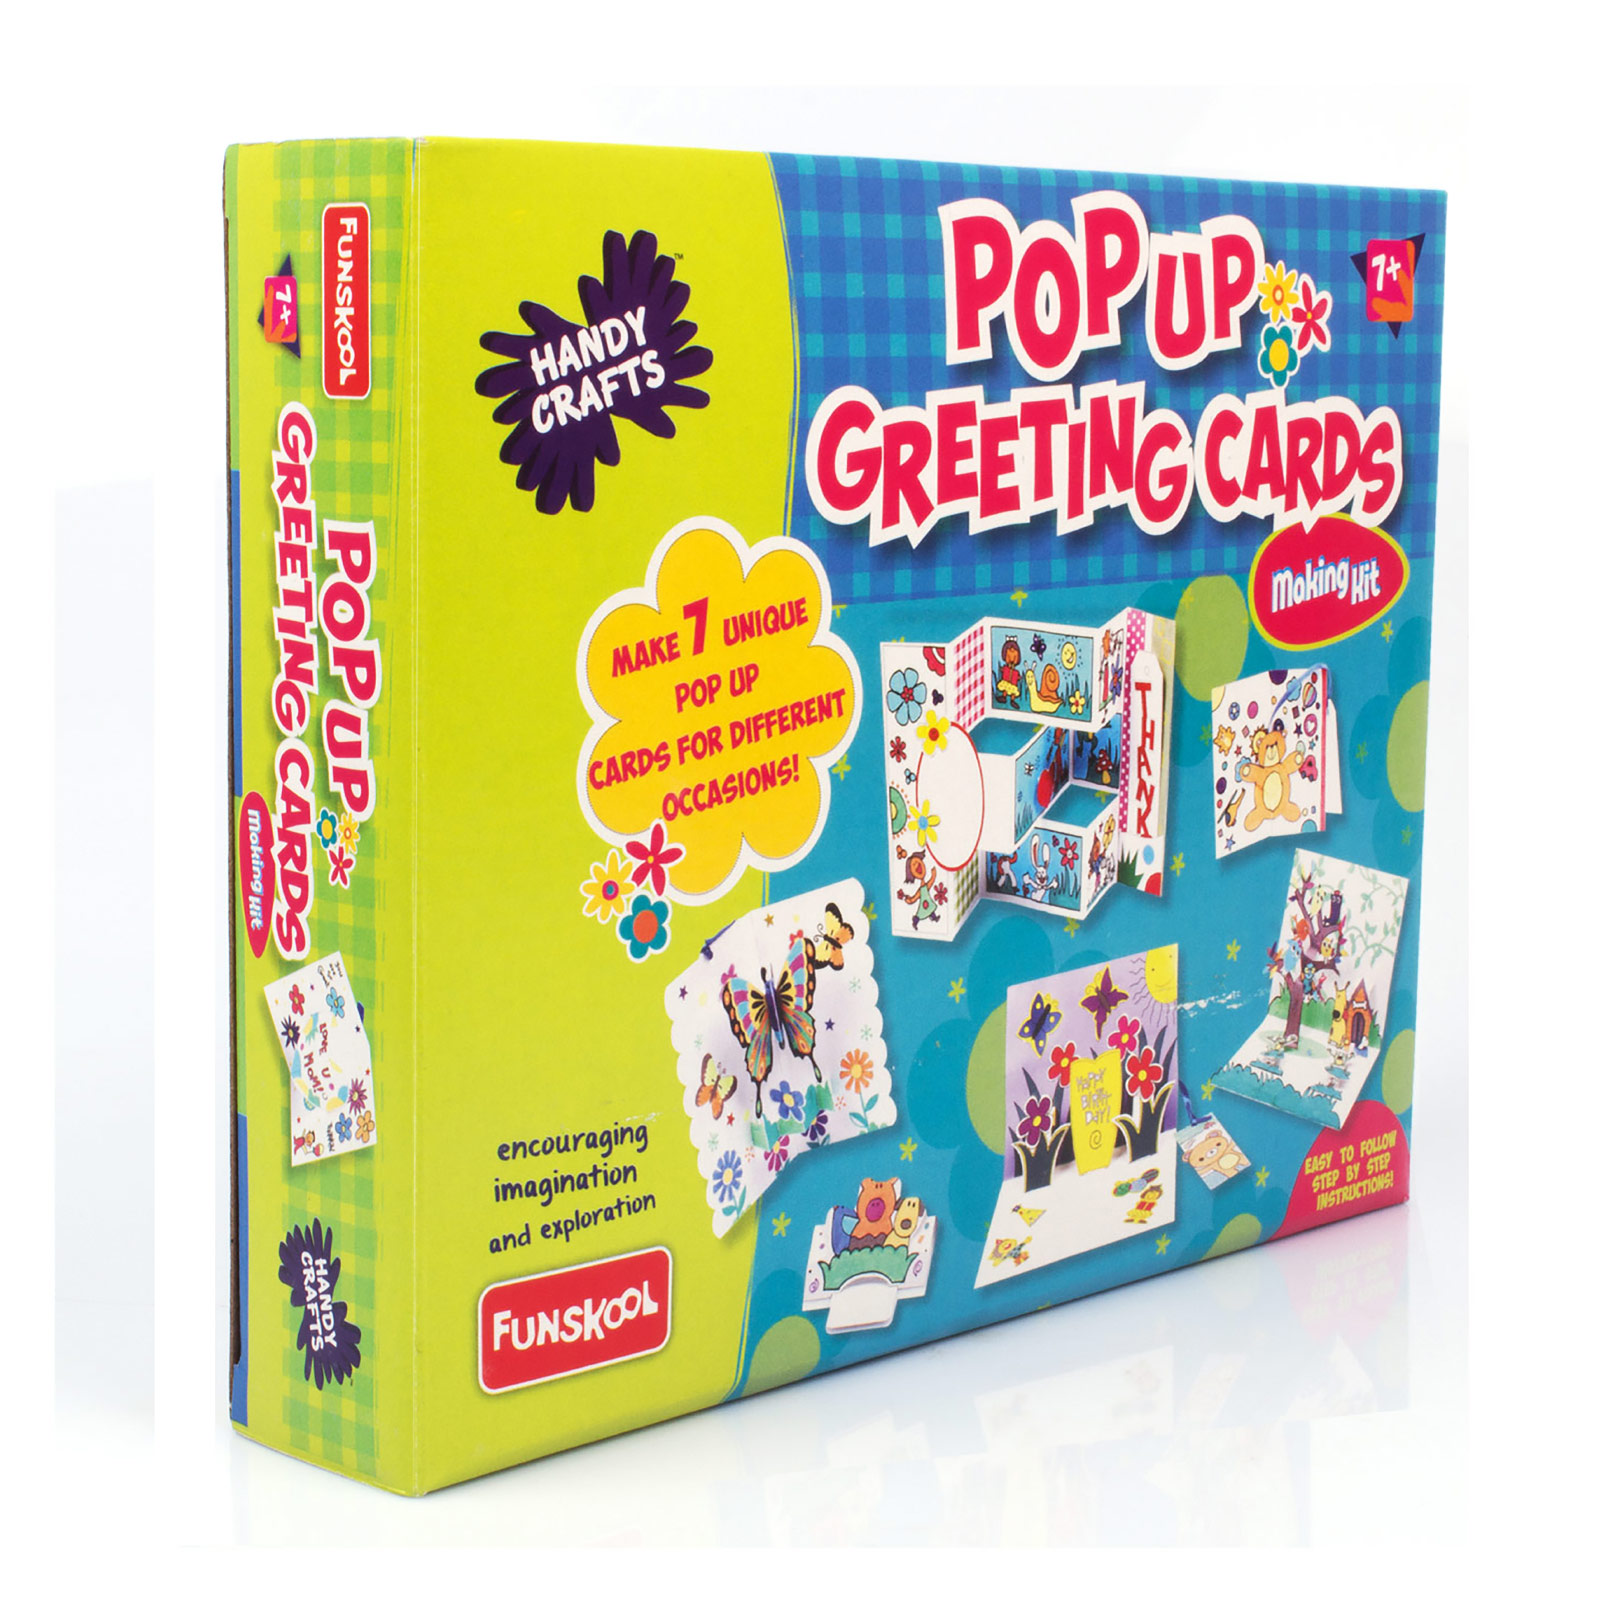 Pop Up Greeting Cards